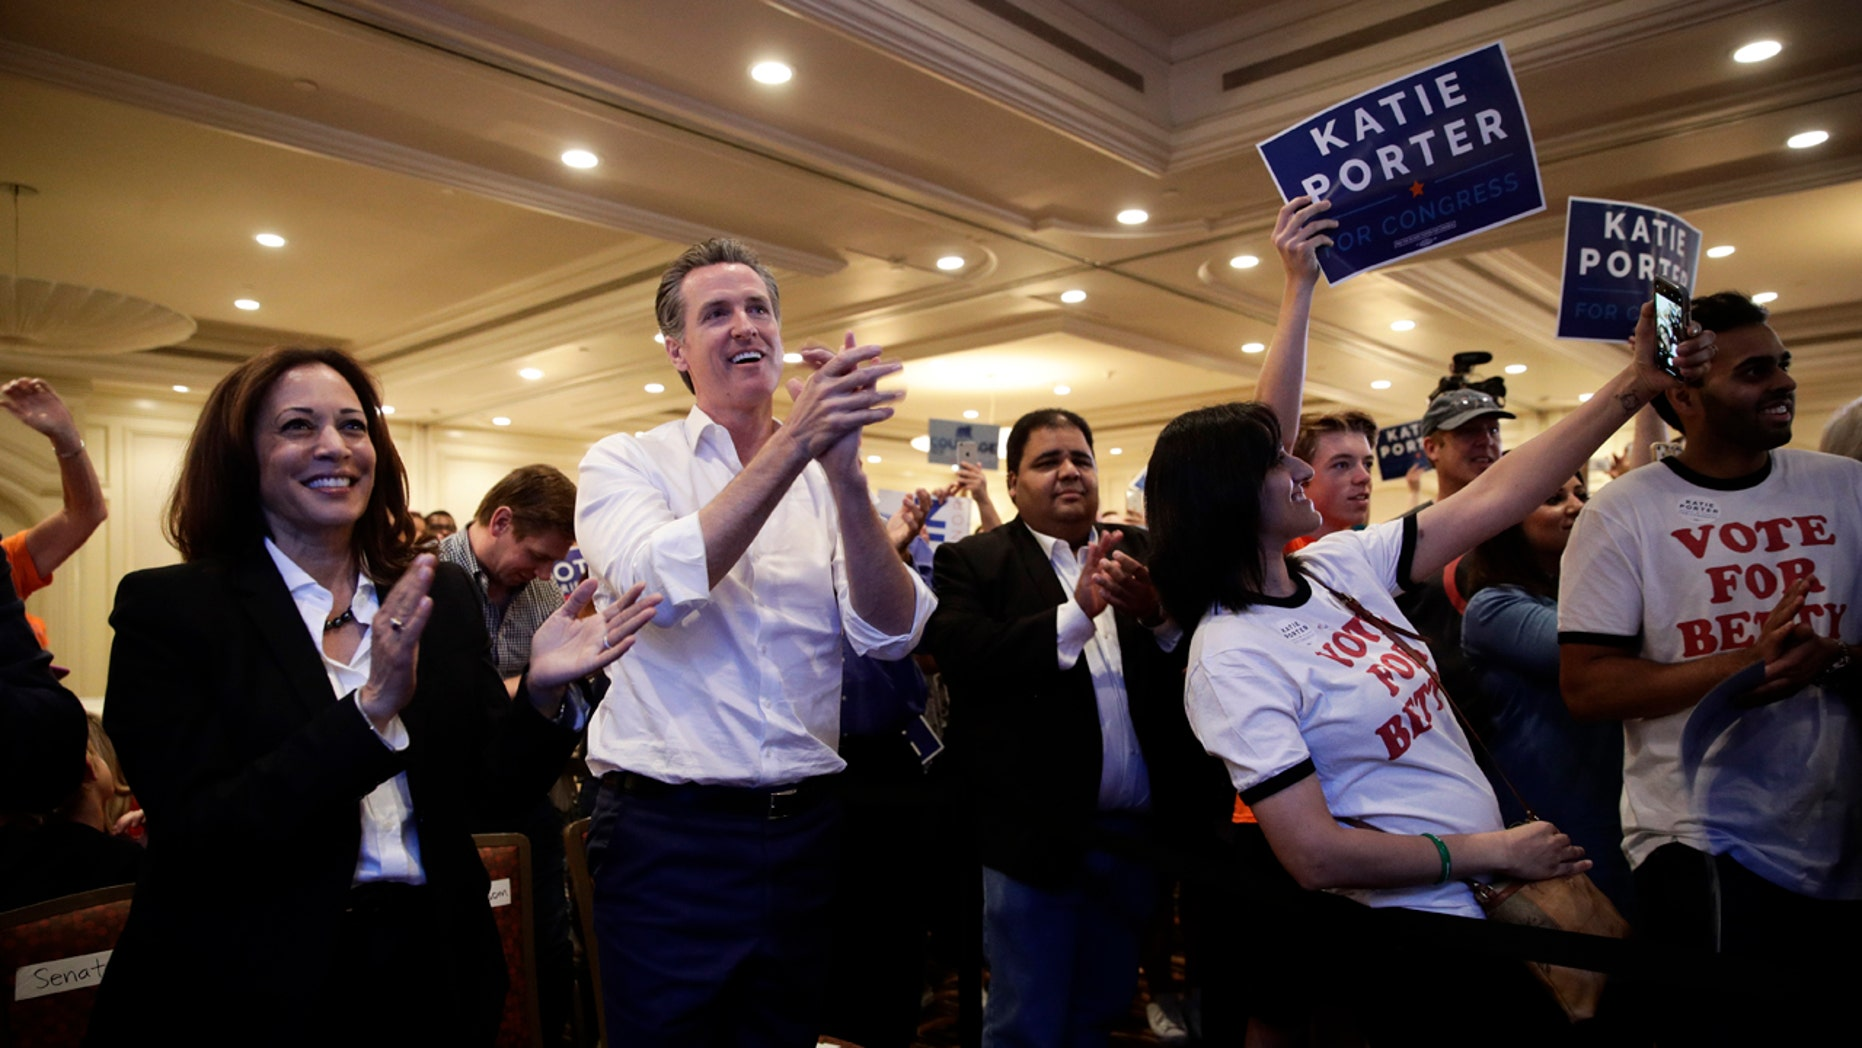 Sen. Kamala Harris, D-Calif., left, and California gubernatorial Democratic candidate Gavin Newsom applaud as they listen to Katie Porter, a congressional candidate for California's 45th District, during a campaign rally Saturday, Nov. 3, 2018, in Irvine, Calif. The fight for control of the U.S. House is attracting big names to historically Republican Orange County, California. (AP Photo/Jae C. Hong)